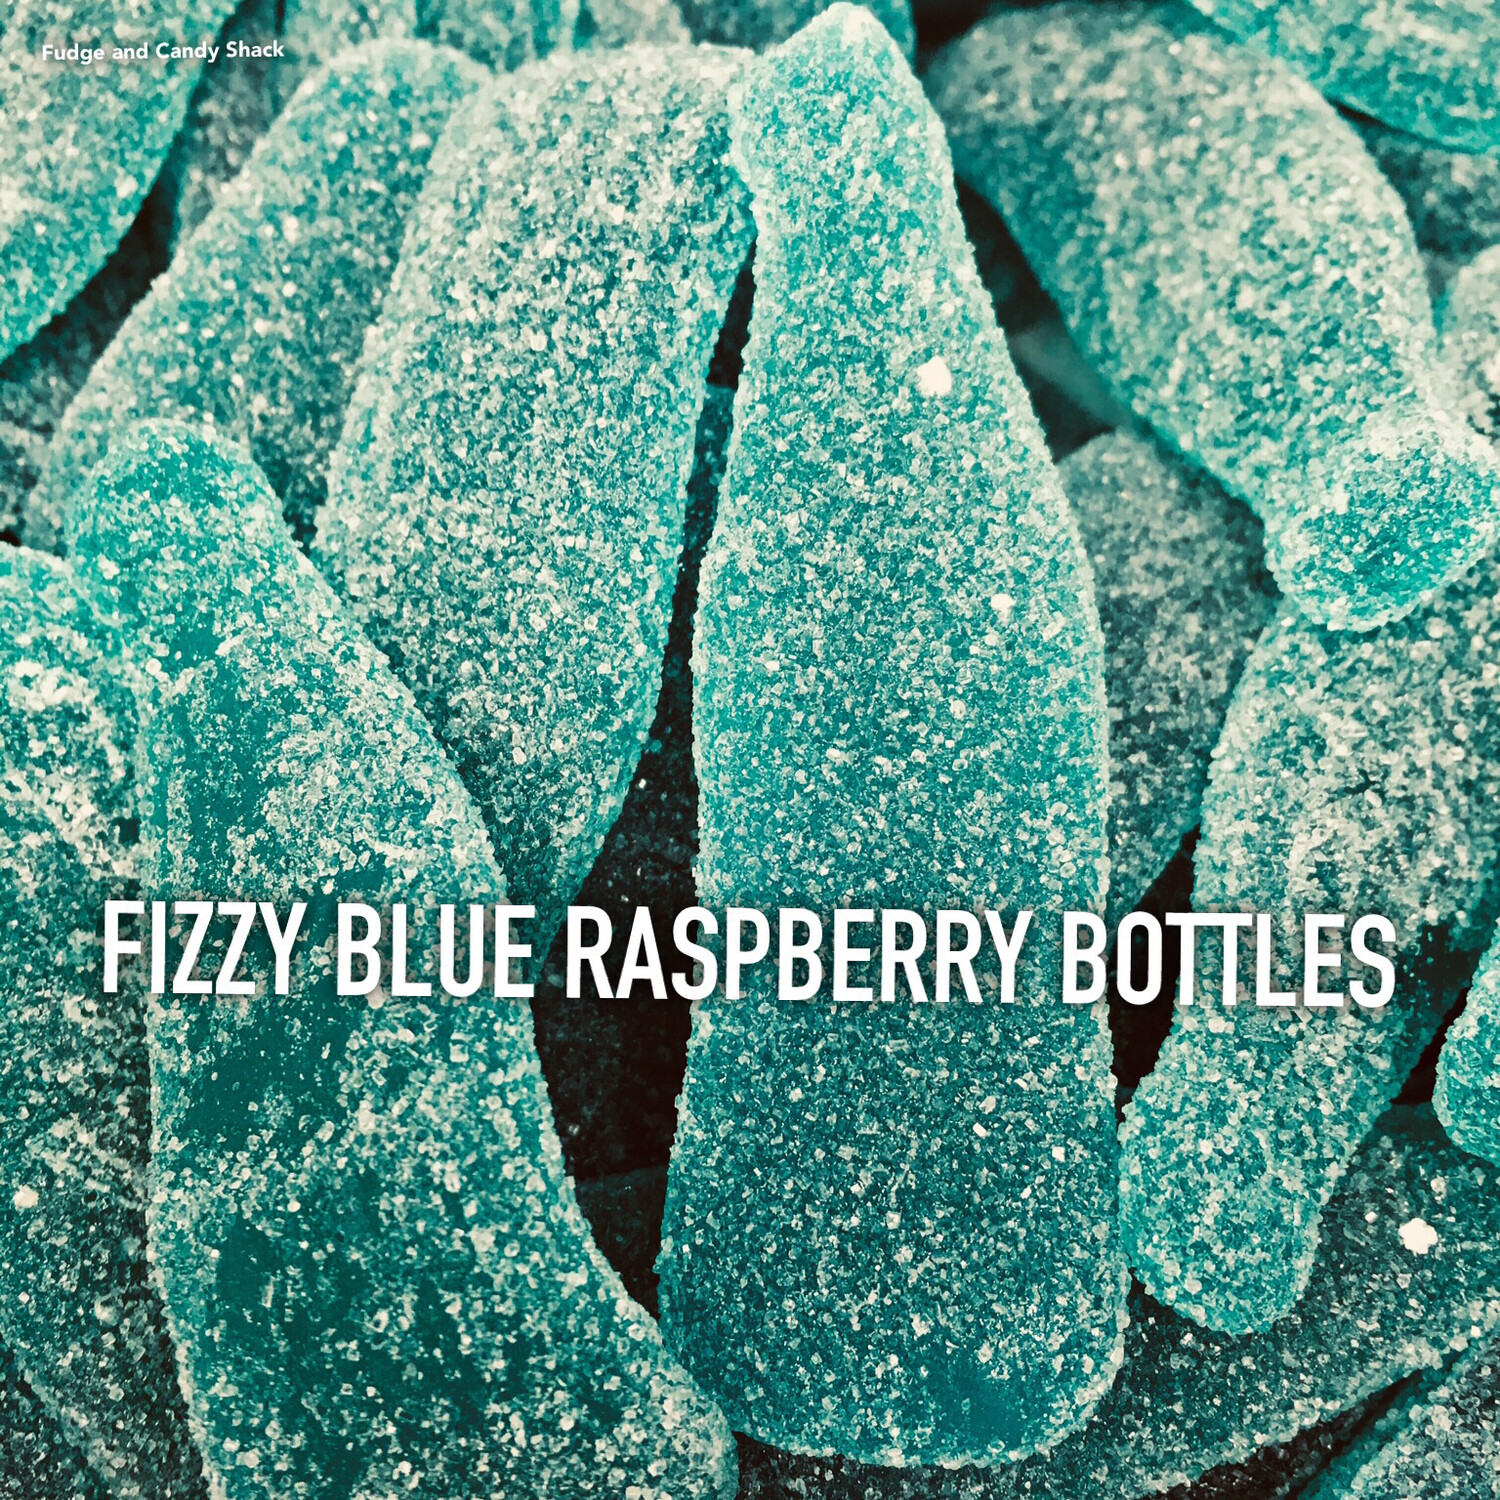 FIZZY BLUE RASPBERRY BOTTLES